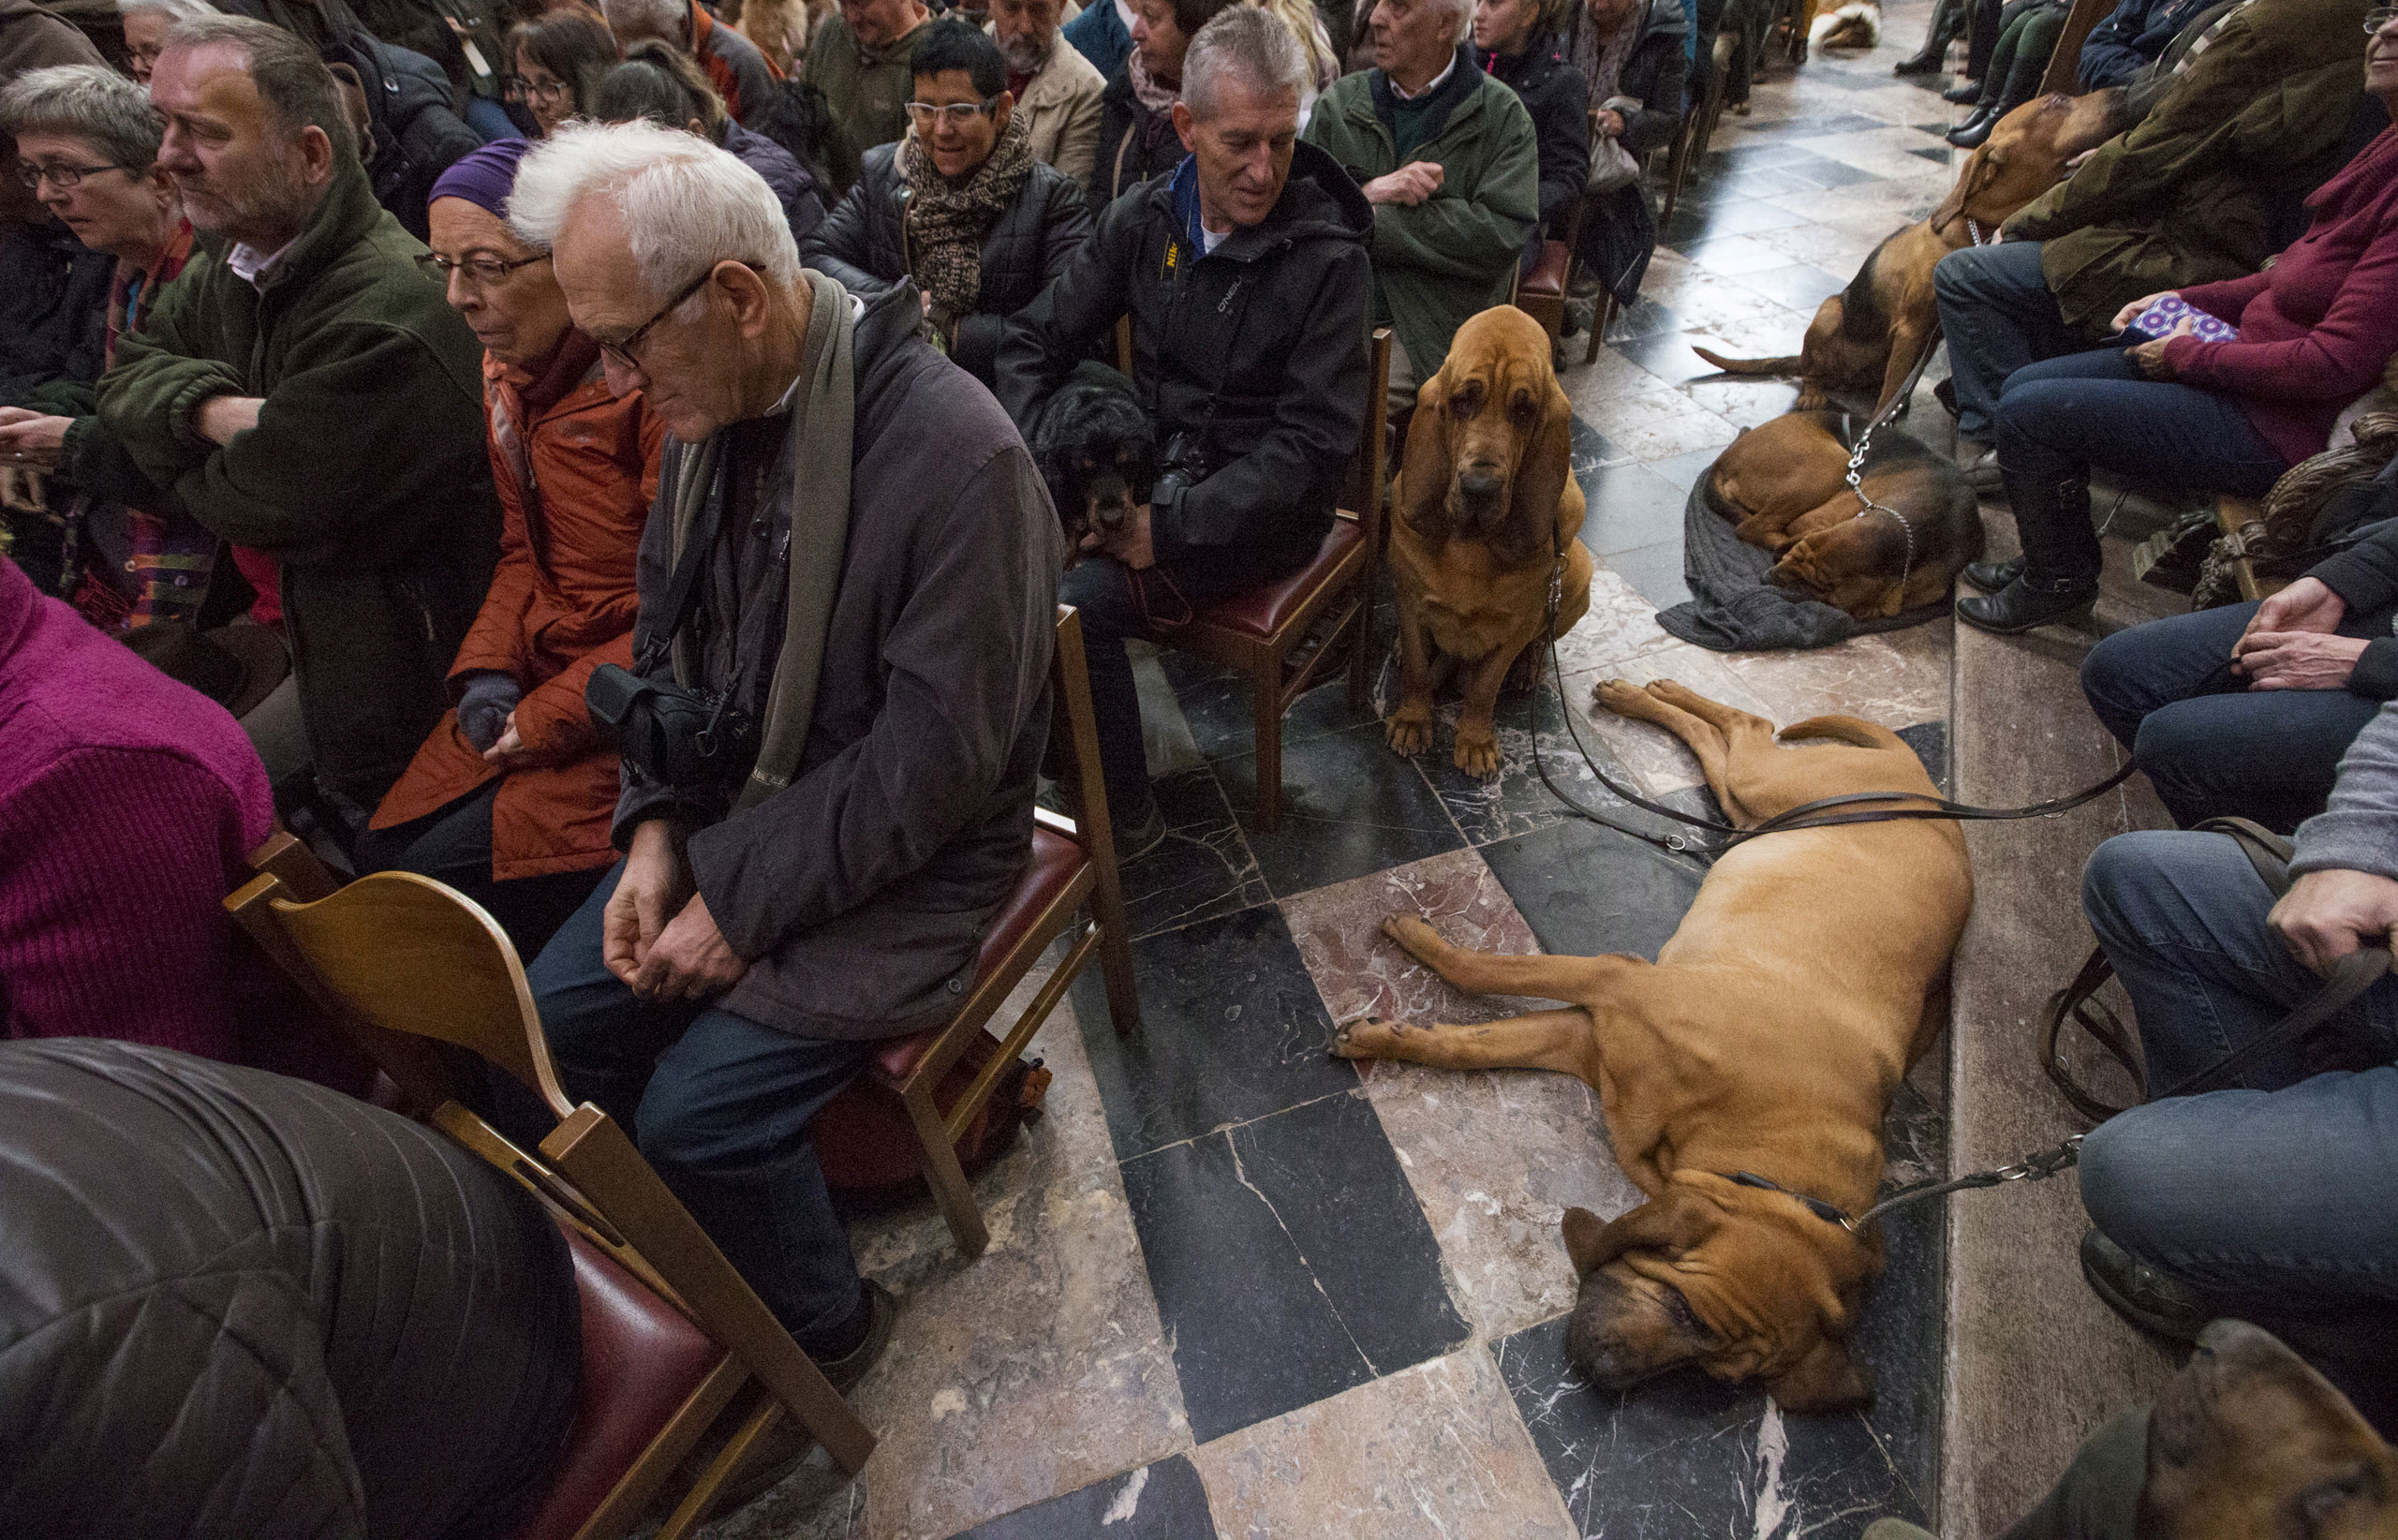 Dogs are seen among faithfuls during a religious service ahead of a blessing ceremony for animals at the Basilica of St. Peter and Paul in Saint-Hubert, Belgium, Nov. 3, 2015. Hundreds of animals get blessed during the celebration of Saint Hubert, the patron saint of hunters who is also invoked for protection of dogs and horses, according to organizers.